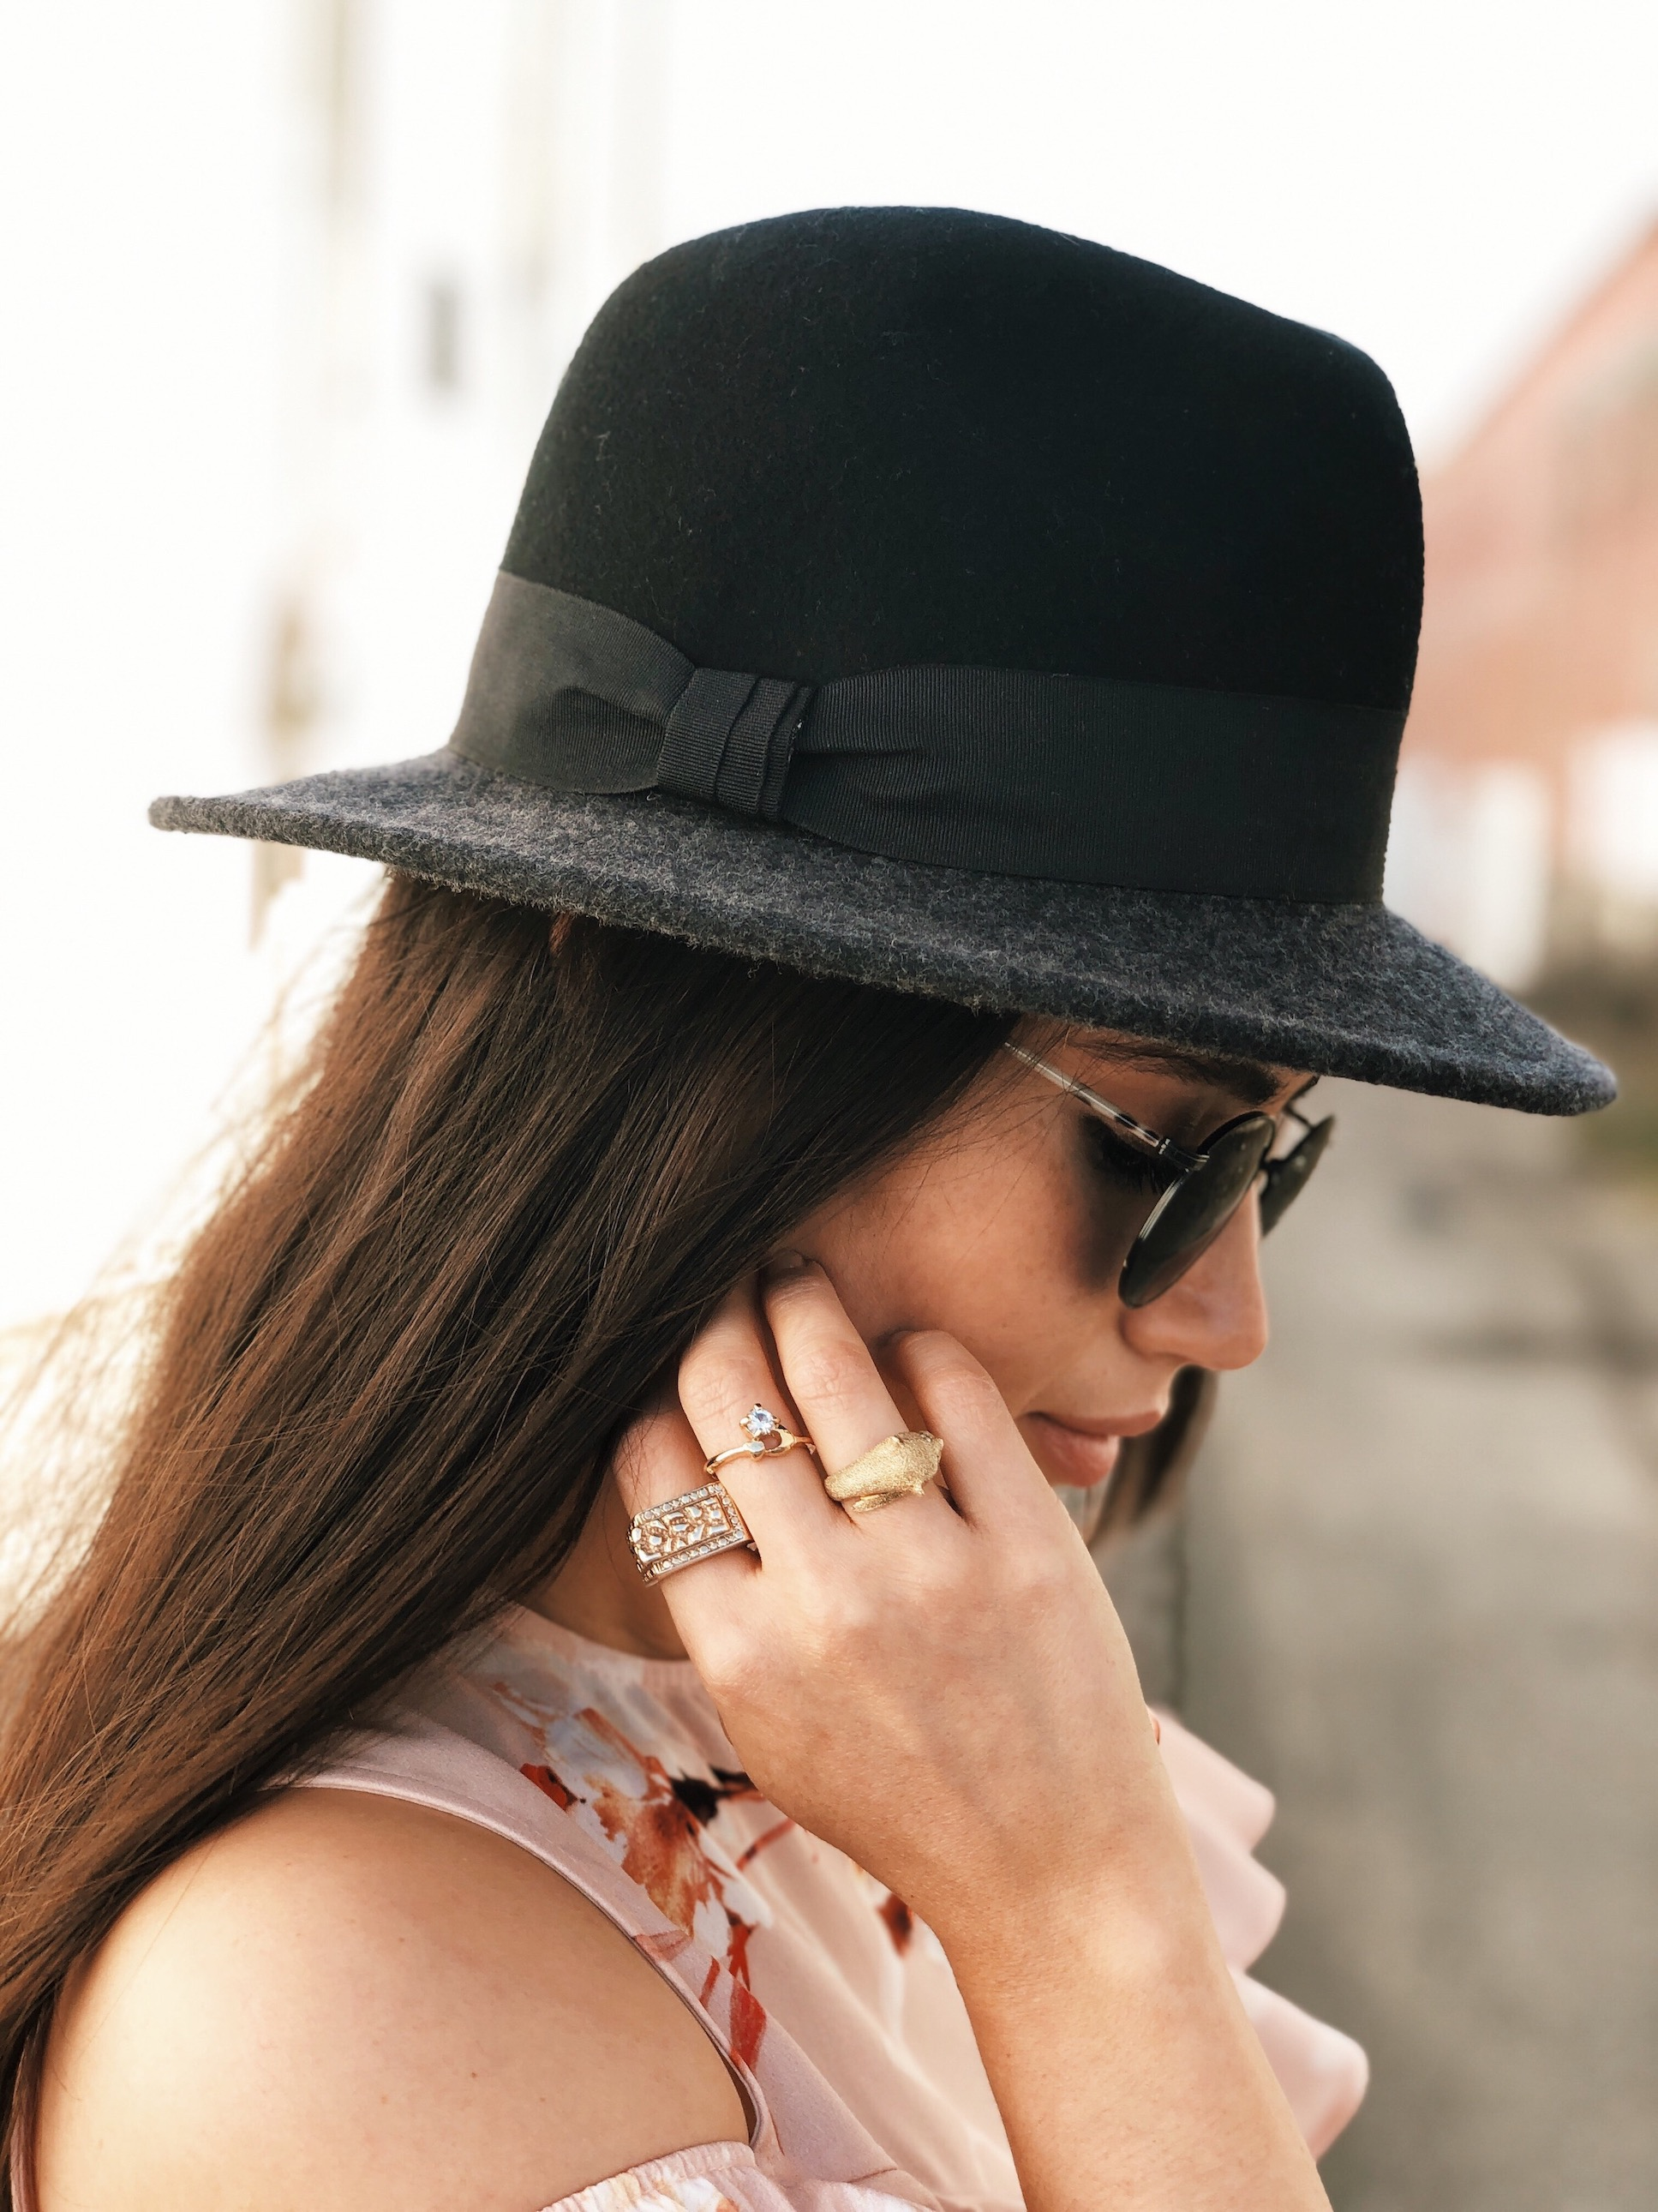 Ring details - A Week Of Cruelty-Free Outfits & Vegan Beauty With Jessica Salazar From All There August on The Good Trade